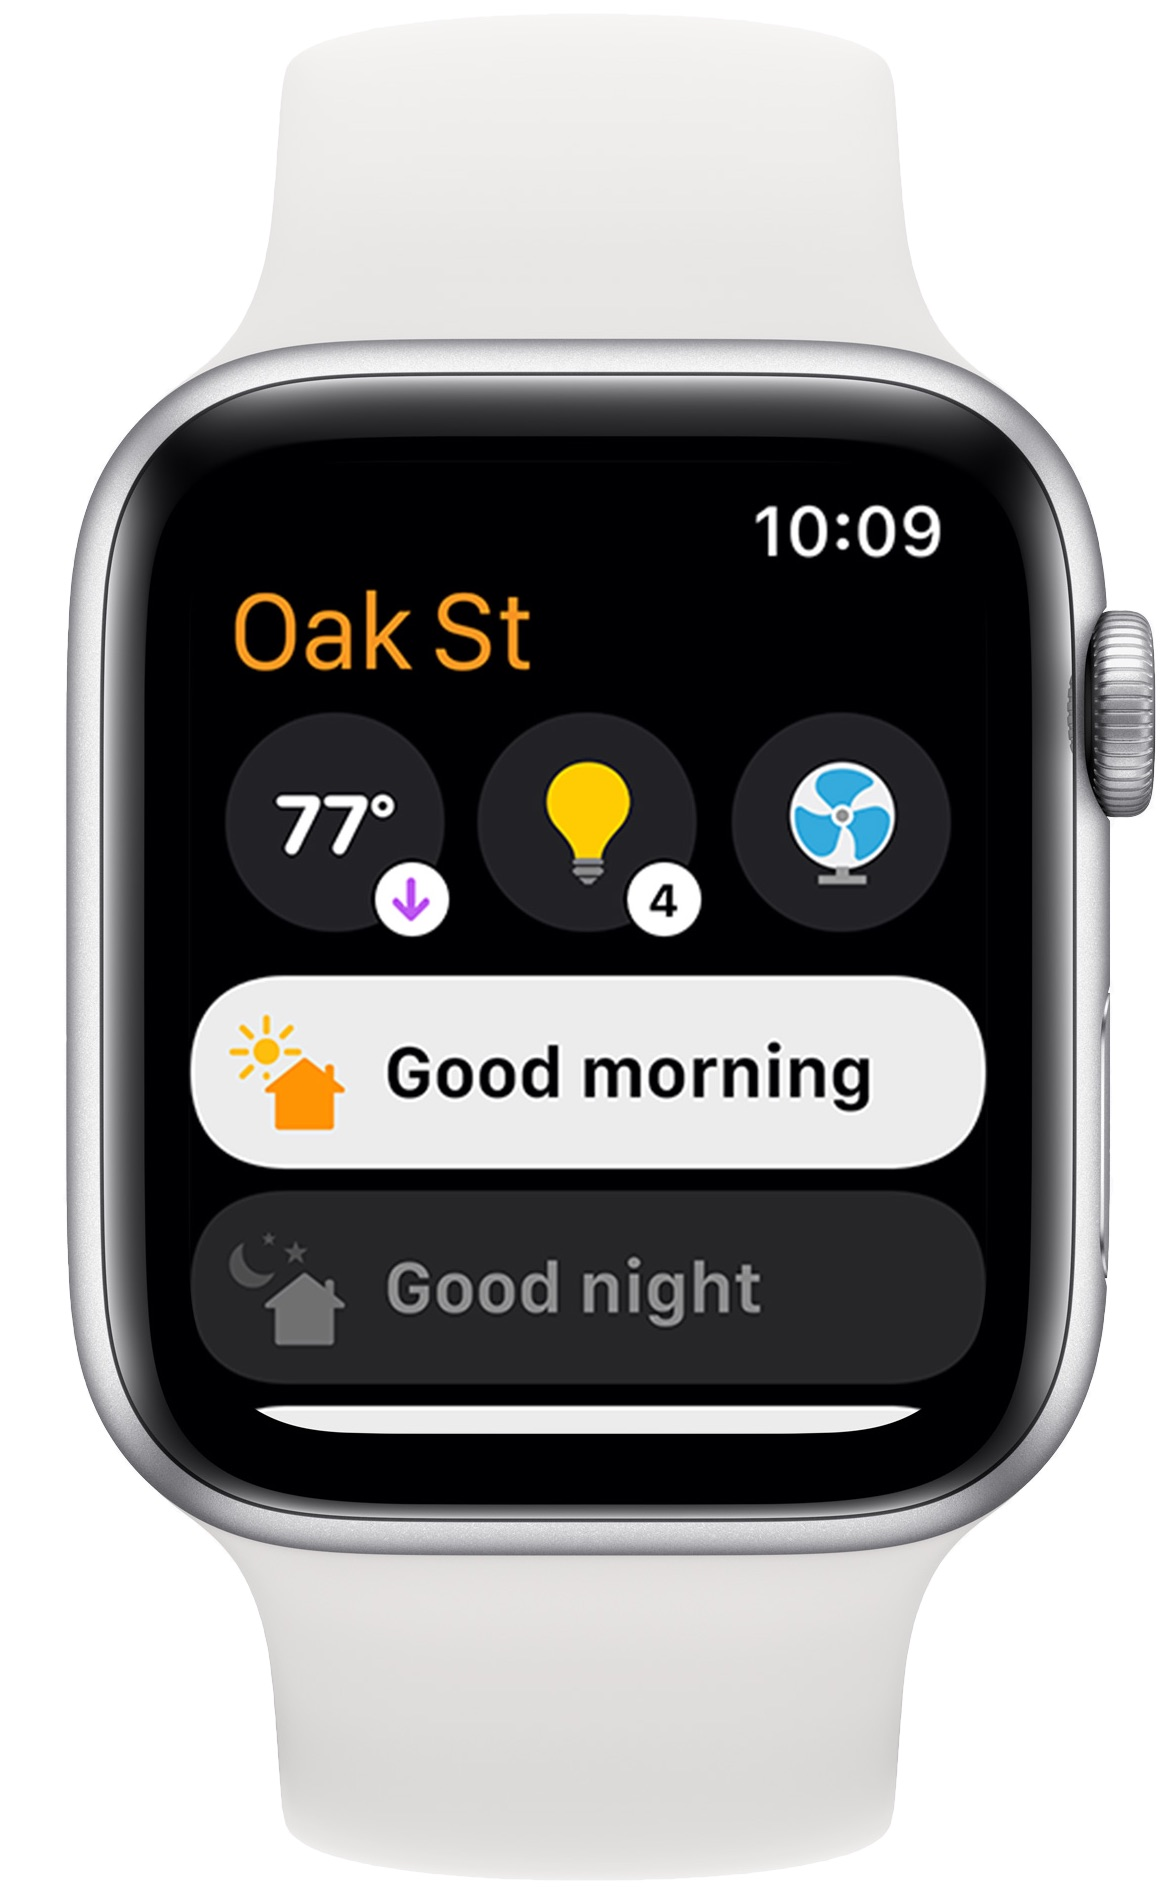 The redesigned Home app on watchOS 8 shown running on Apple Watch, showing convenient access to HomeKit scenes and accessories